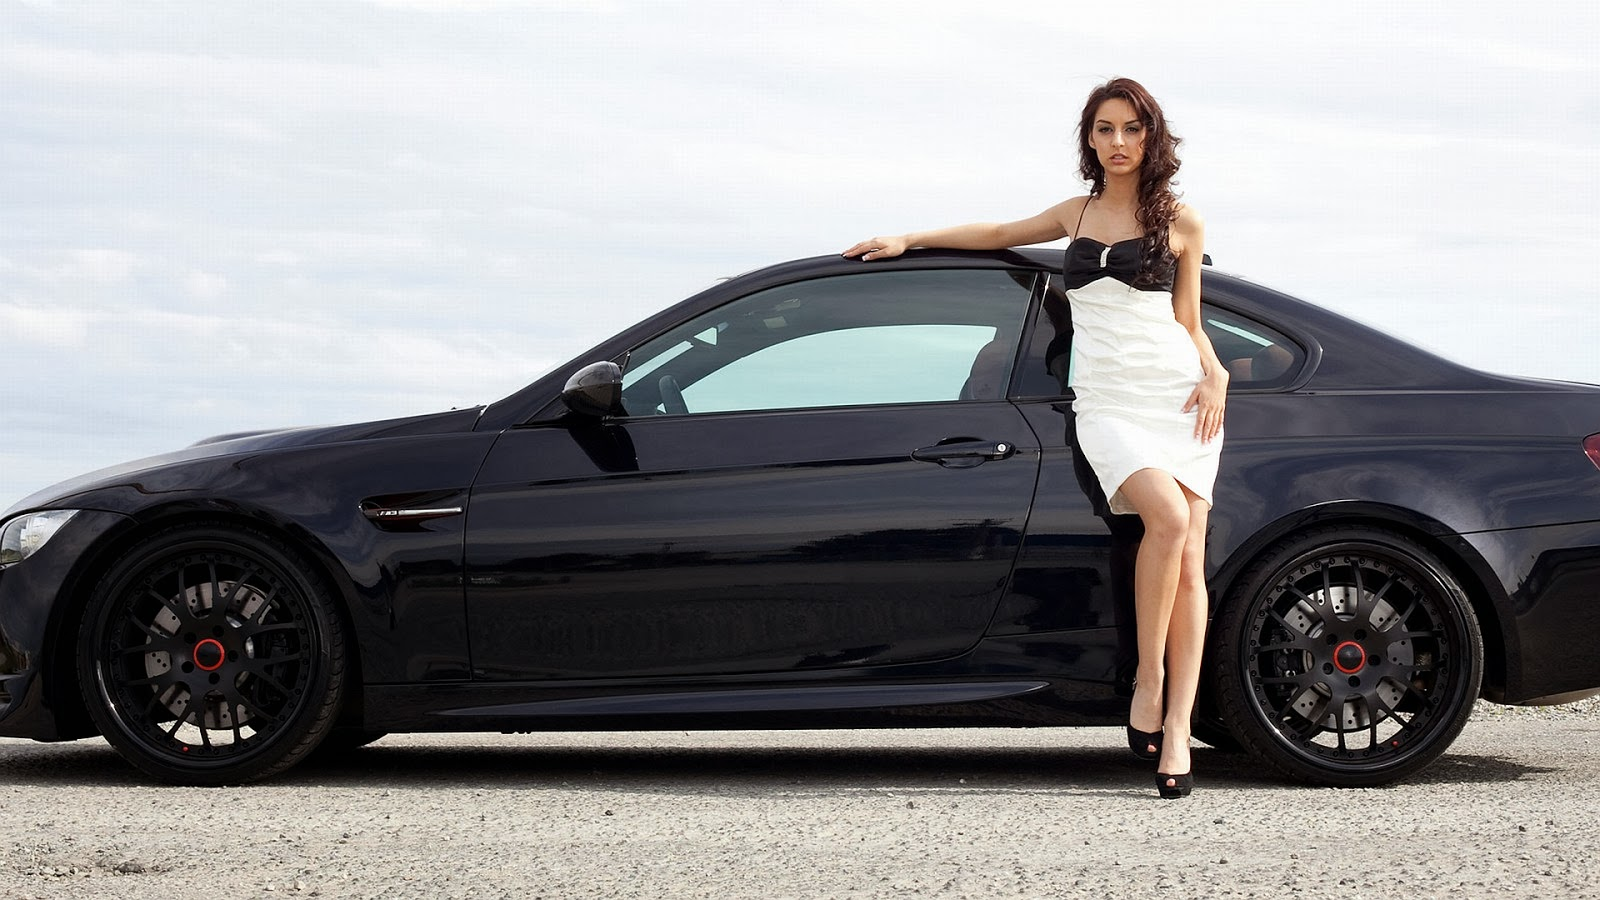 Beautiful-girl-model-with-latest-black-sports-car-HD-photo-collection.jpg